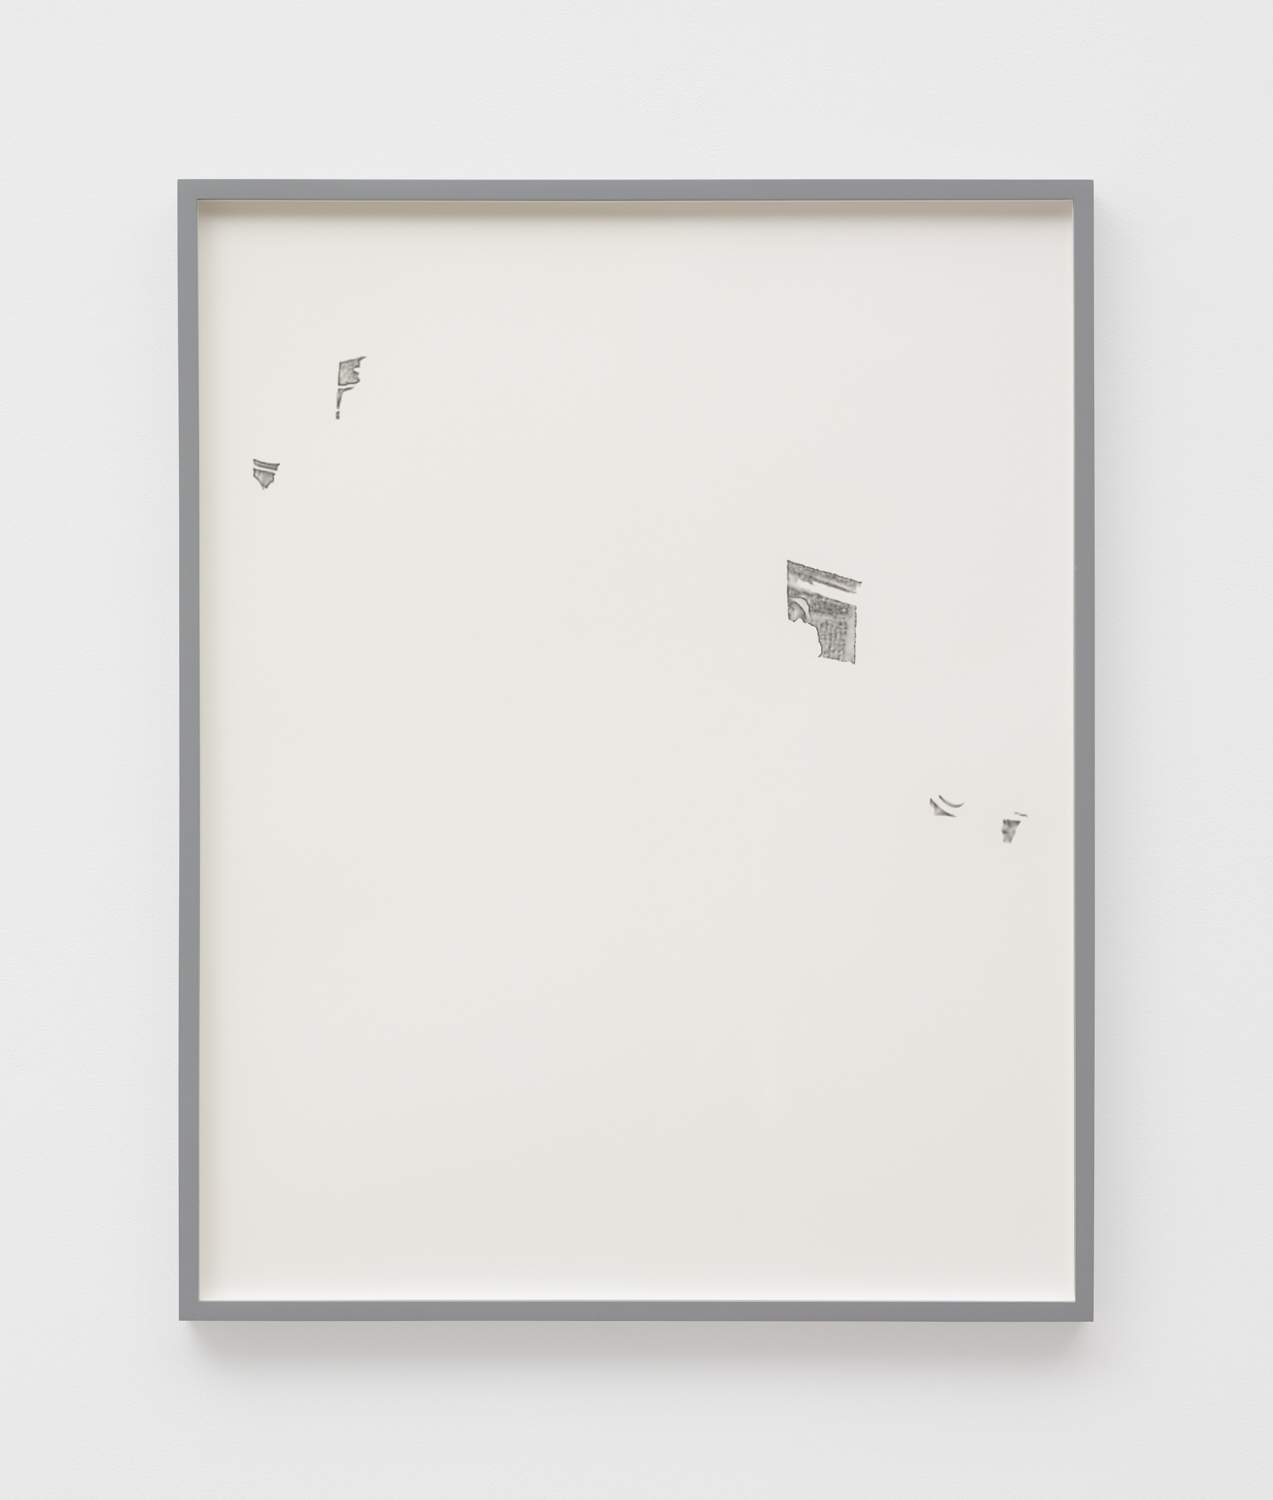 Untitled , 2017 graphite on paper 28 27/32 x 22 15/16 in (73,25 x 58,25 cm)